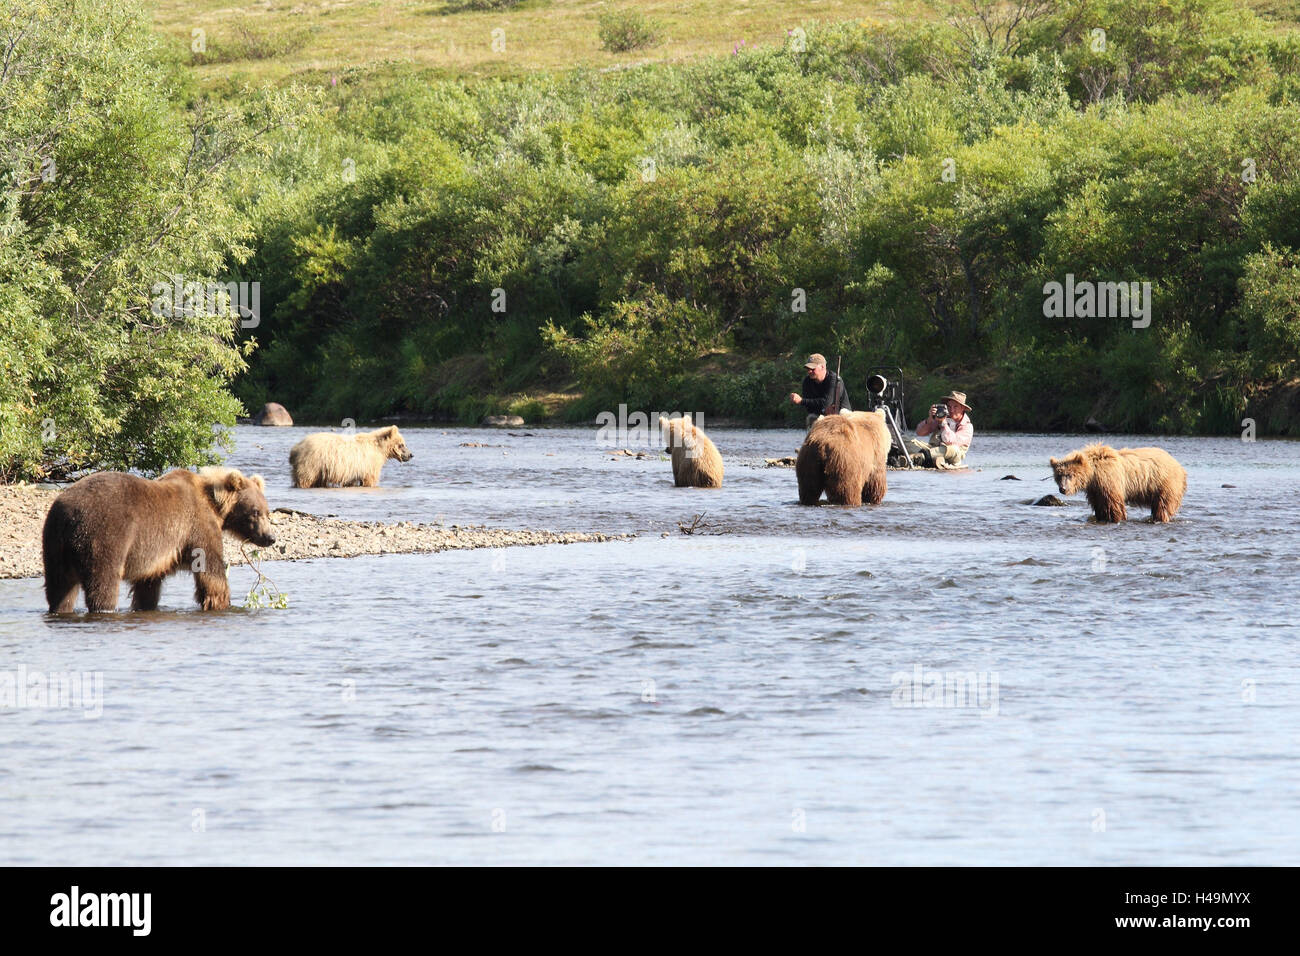 river, grizzly bear, photographer, water, - Stock Image